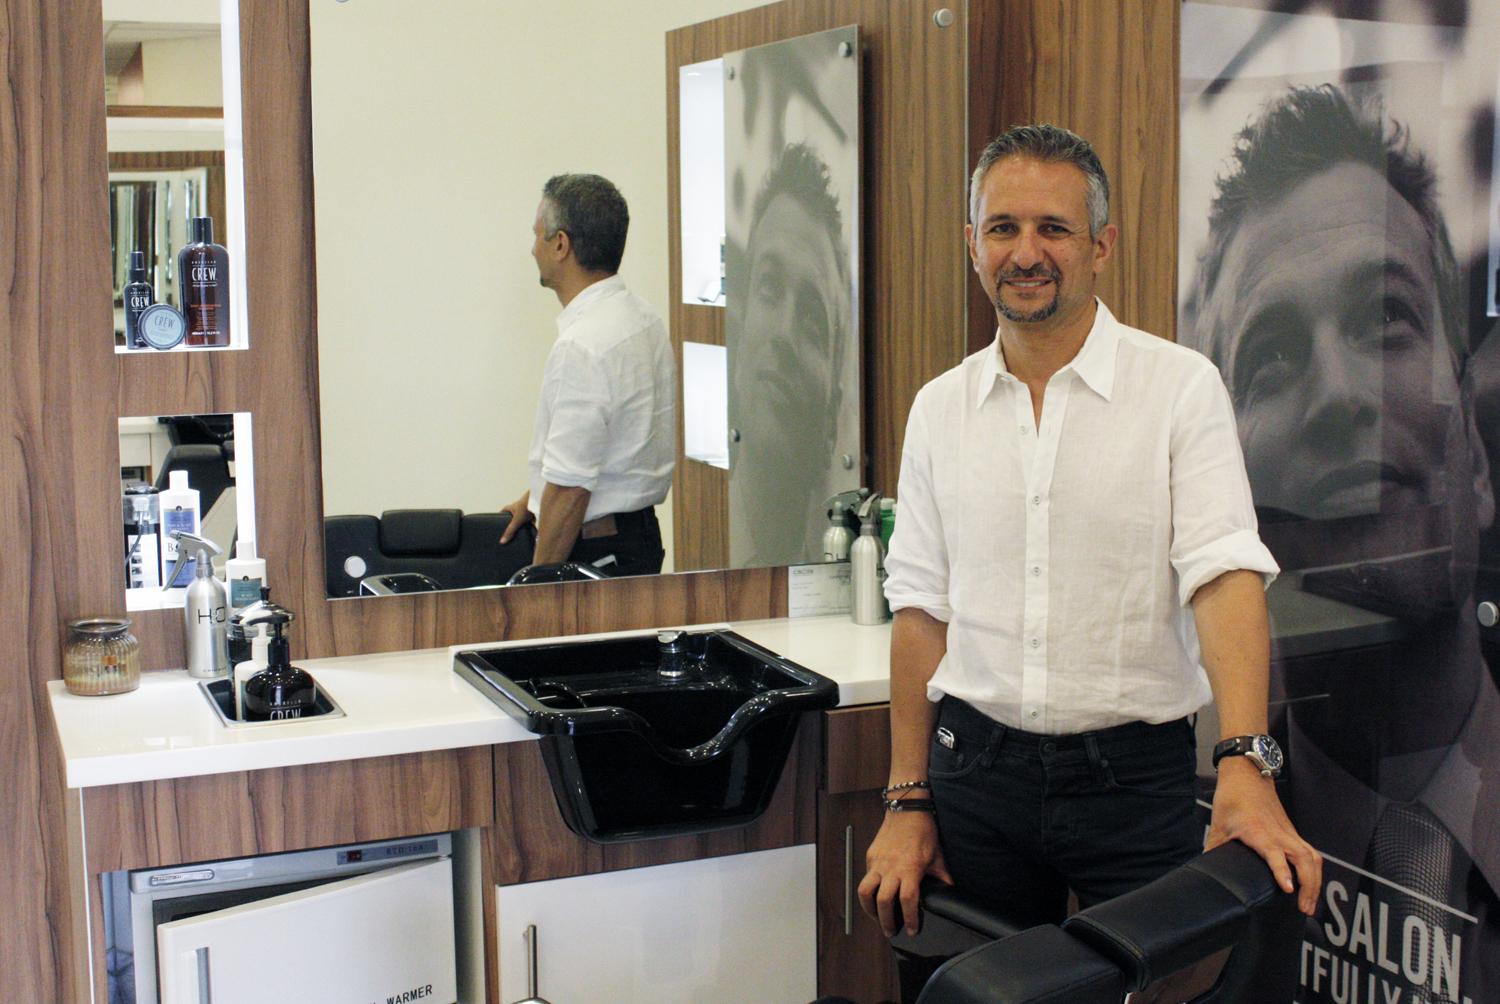 Newport local news coastal fashion 18 8 fine men s salon for A cut above grooming salon